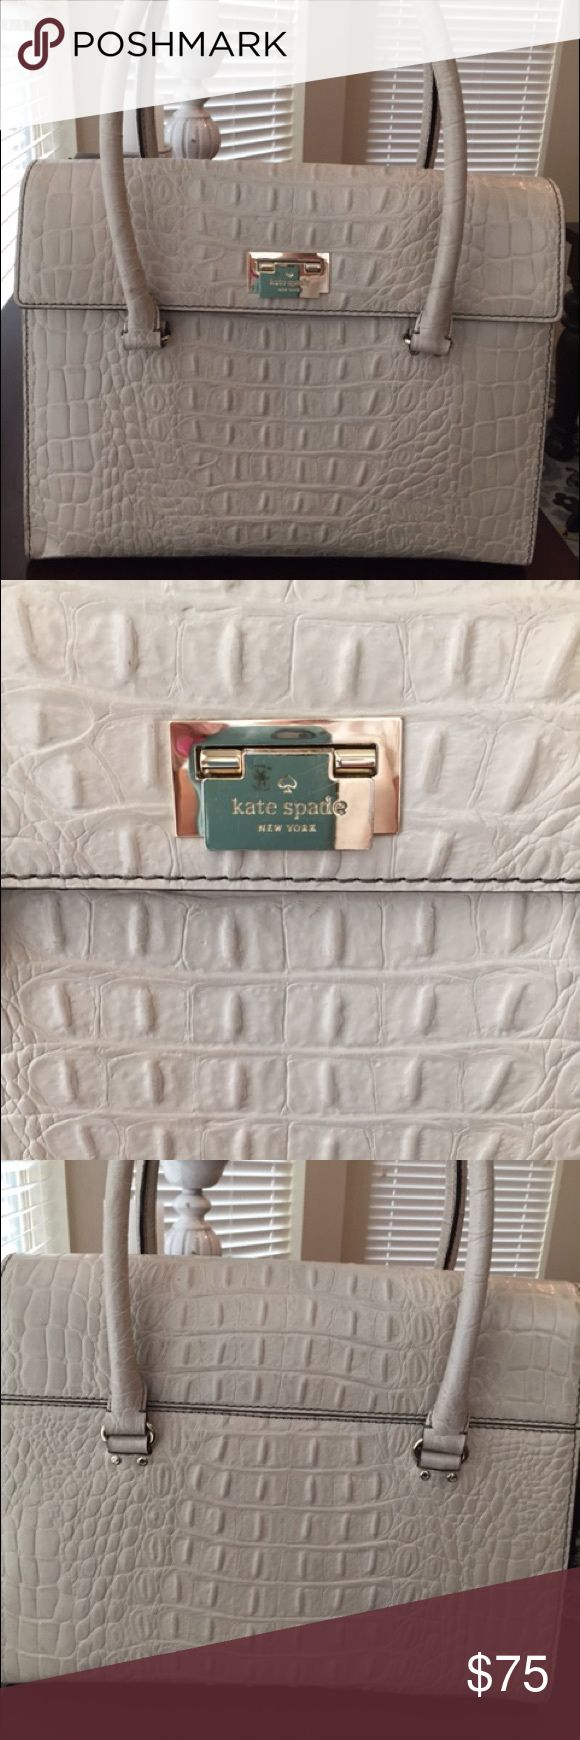 Kate Spade Creme Crocodile Handbag Structured purse with gold accents and feet.  Good condition.  Clean on the inside.  Some wear on the handles.  Used 1 season. kate spade Bags Satchels